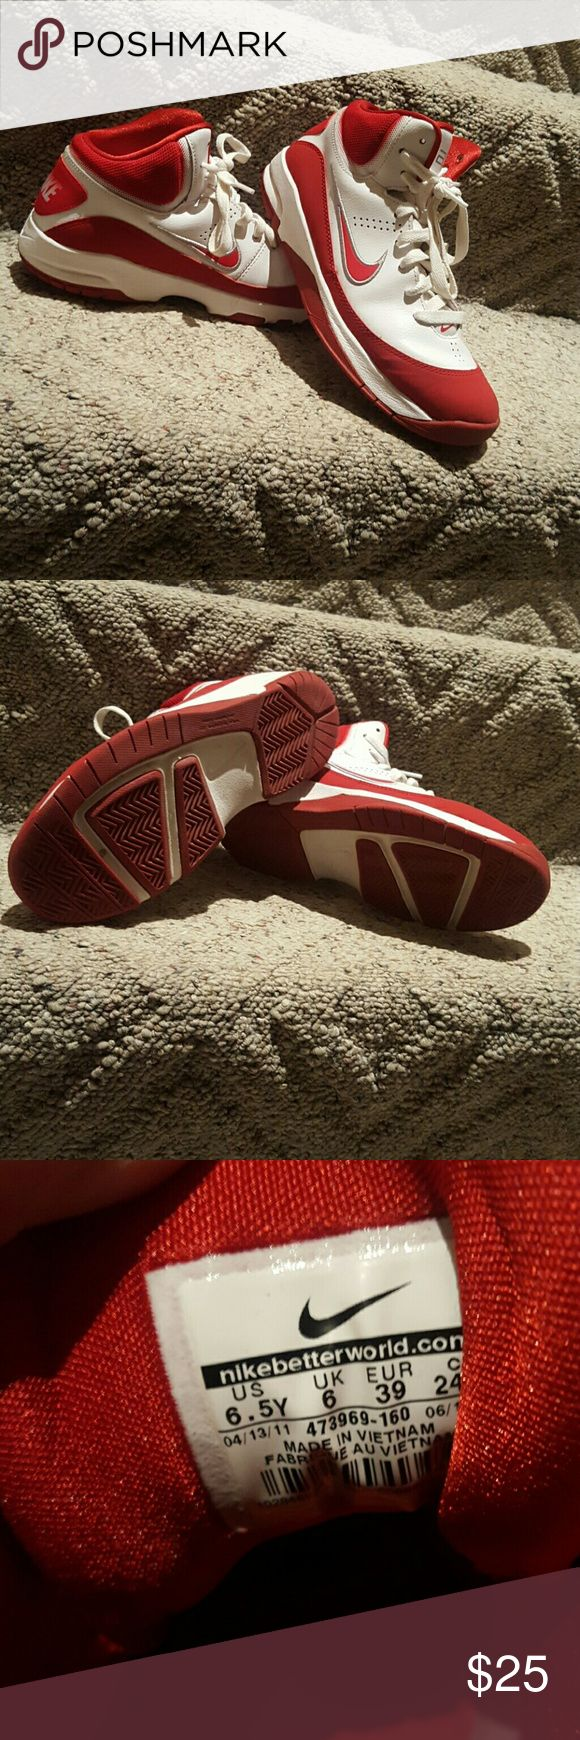 Nike high top basketball shoes. Red and white Nike shoes. These are very soft inside and soles look new. Only worn in gym. Nike Shoes Athletic Shoes